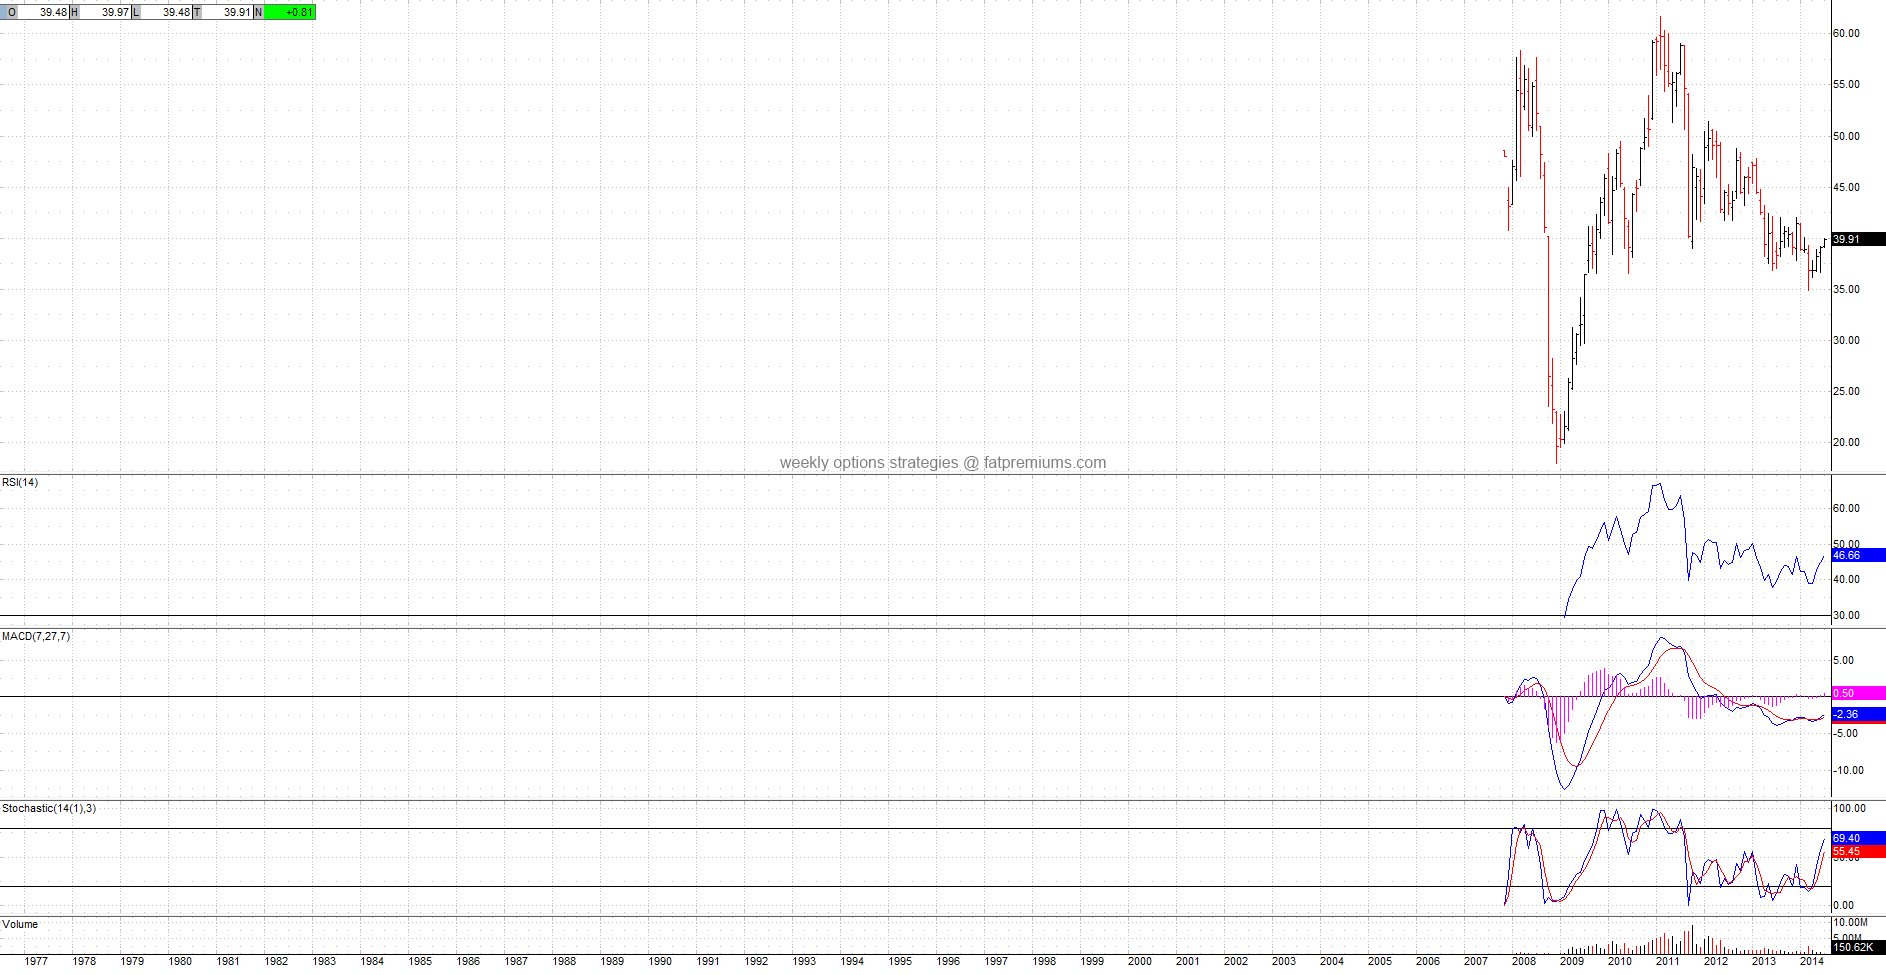 DJ-UBS Copper TR Sub-Idx ETN Ipath (NYSEARCA:JJC) Monthly Chart (2014-07-02) Bullish